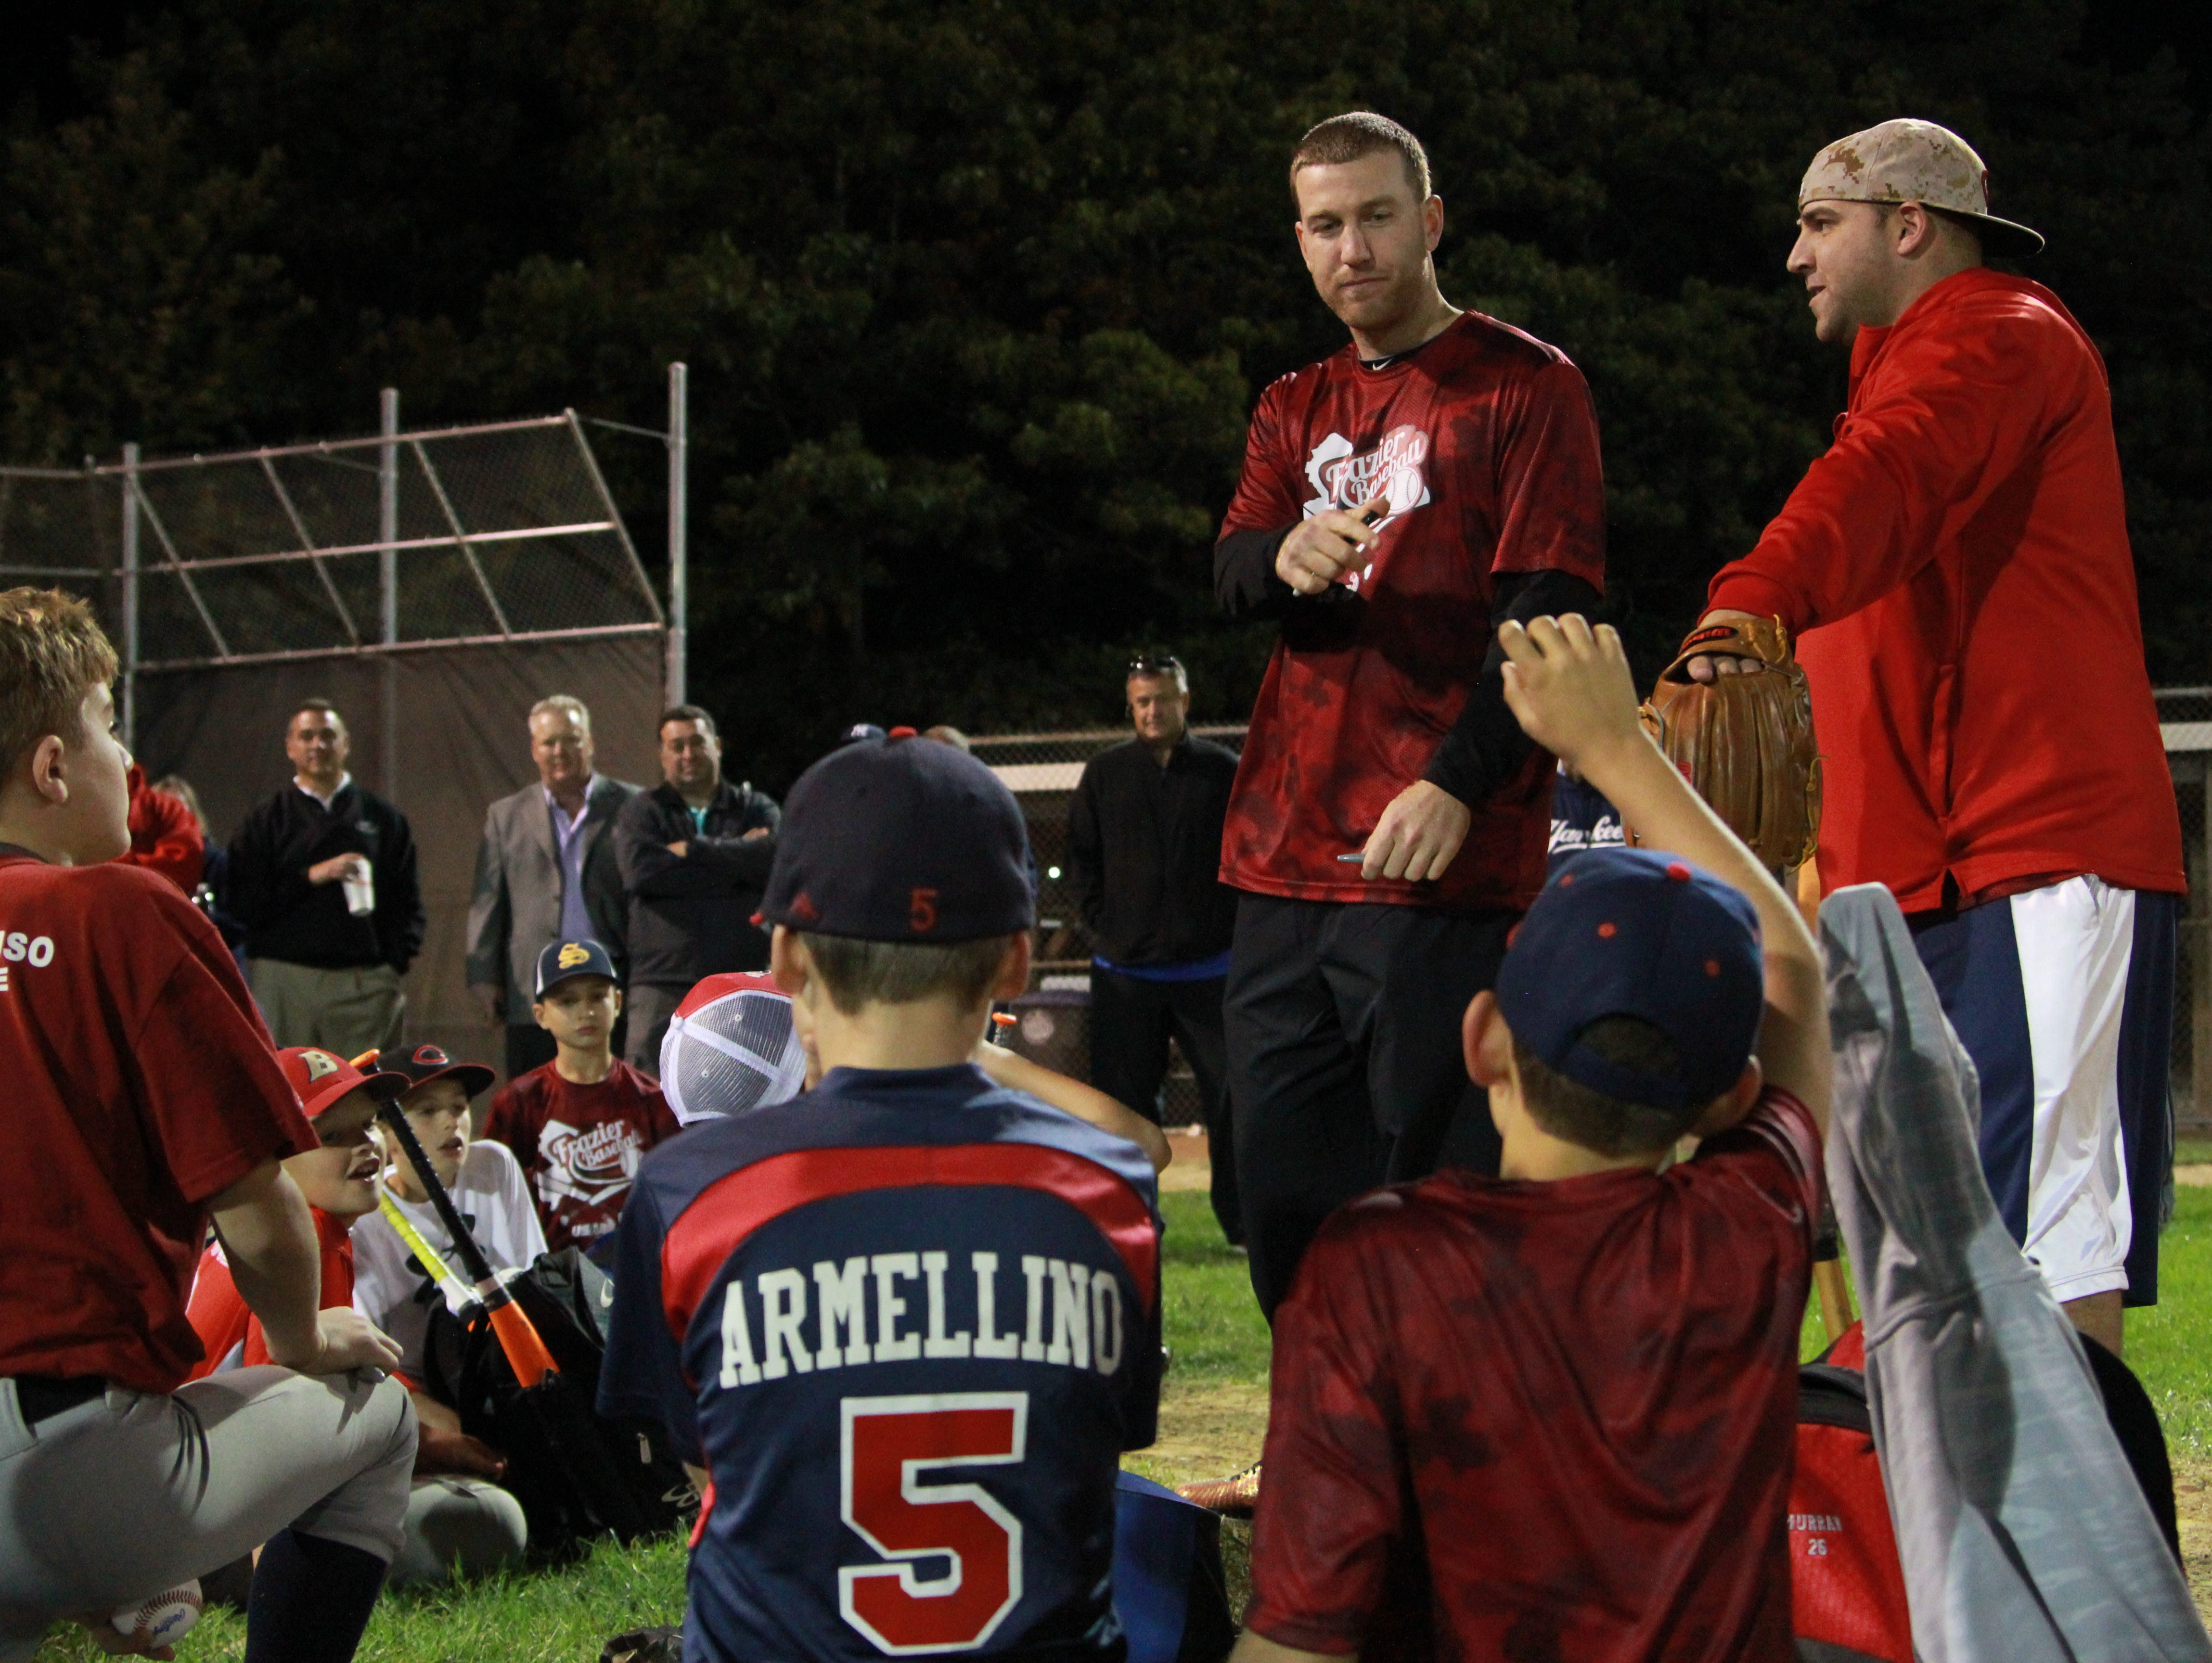 Todd Frazier spoke with and took questions from little leaguers at a clinic in Toms River on Monday.